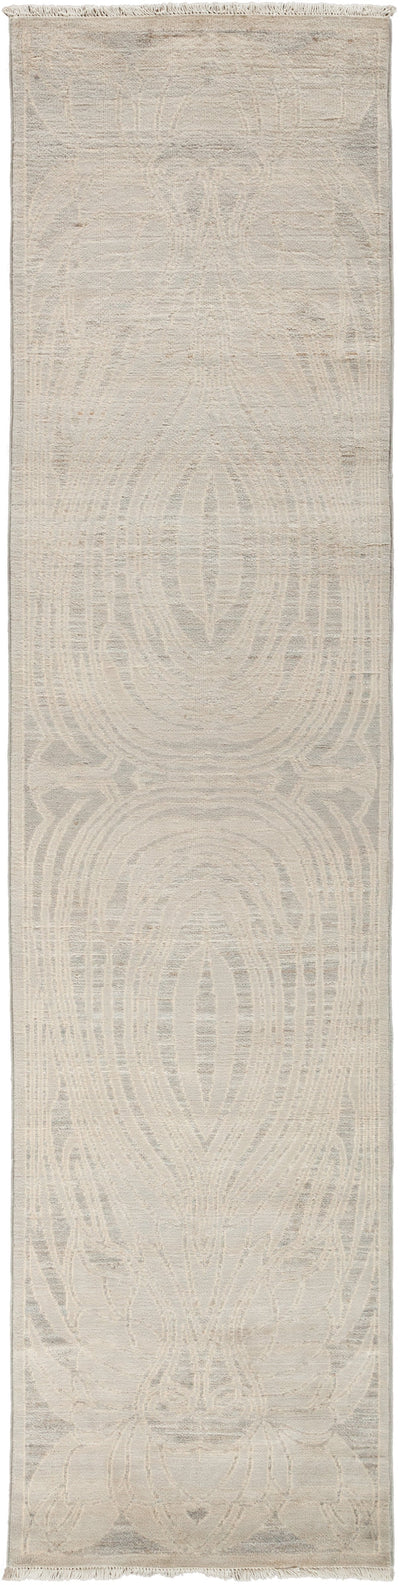 "Modern, Gray Wool & Silk Runner - 2' 8"" x 10' 8"""